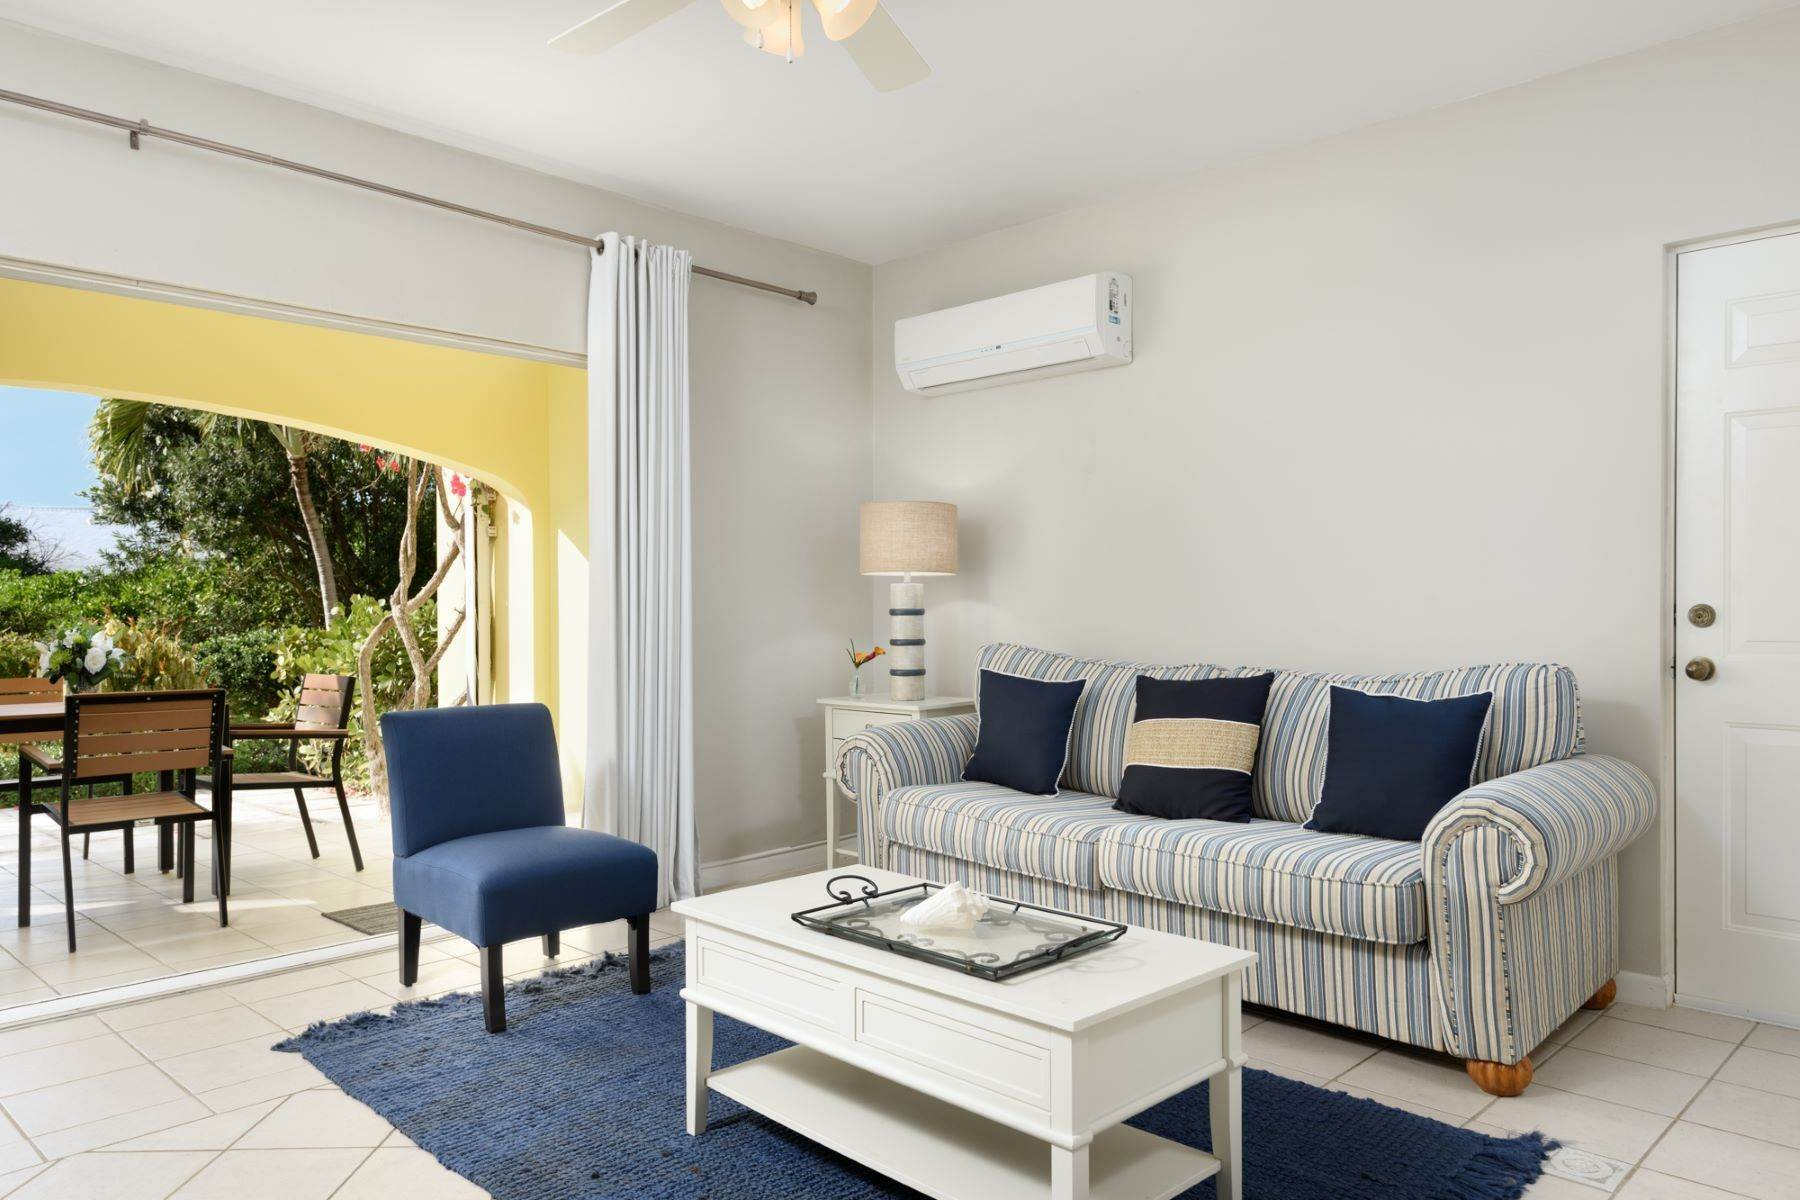 Condominiums for Sale at Inn At Grace Bay 112 Inn At Grace Bay Grace Bay, Providenciales TKCA 1ZZ Turks And Caicos Islands